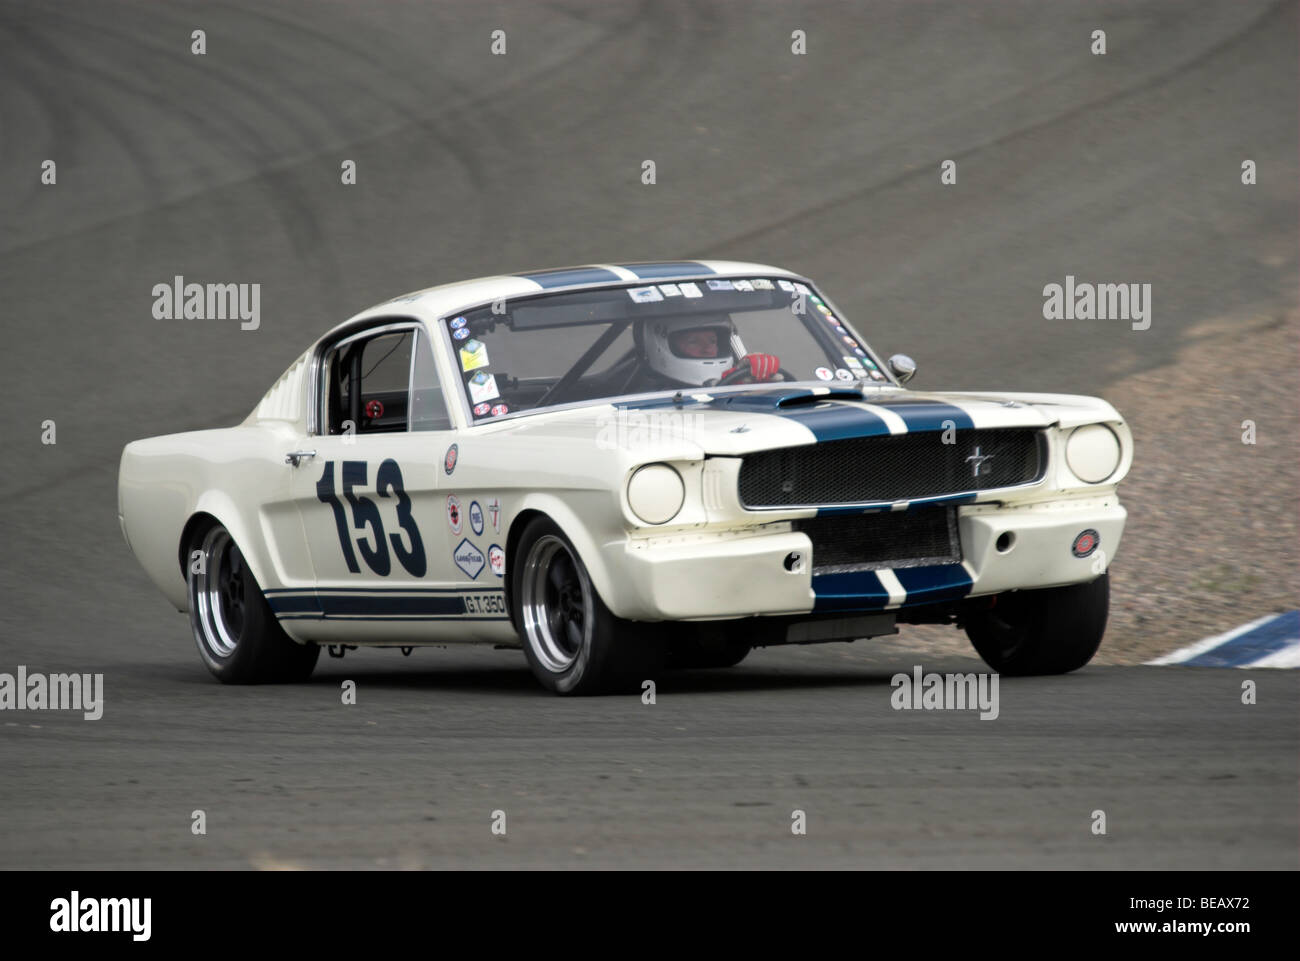 A 1965 Shelby GT350 at a vintage racing event Stock Photo ...